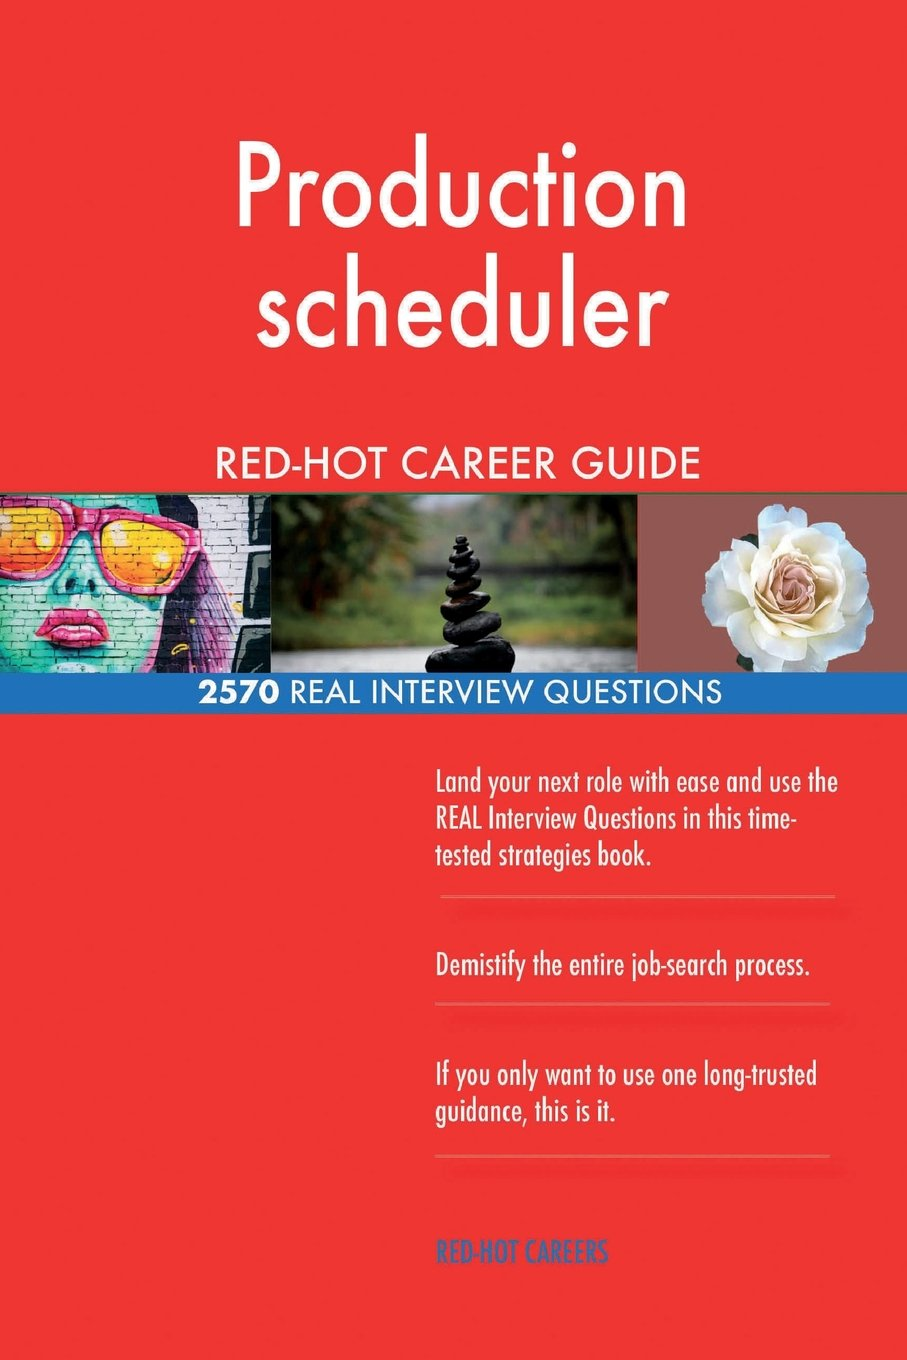 Production scheduler RED-HOT Career Guide